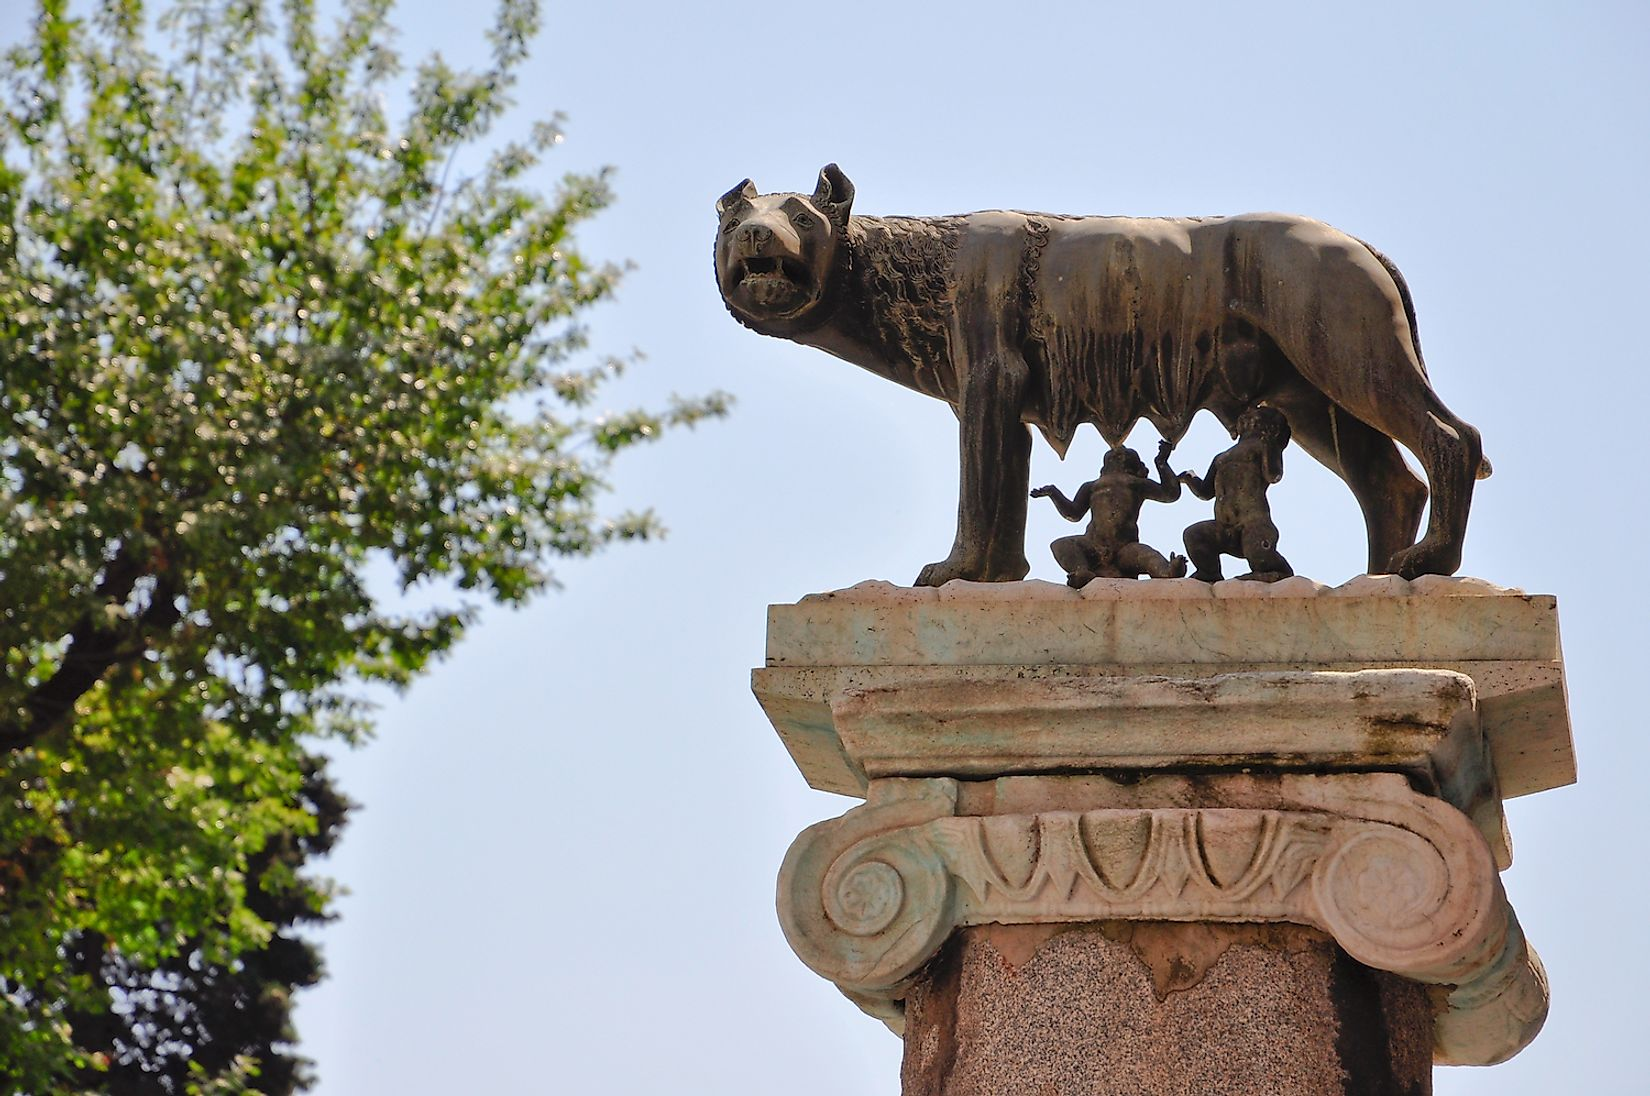 Romulus and Remus and the she-wolf. Image credit: Astridlike/Shutterstock.com